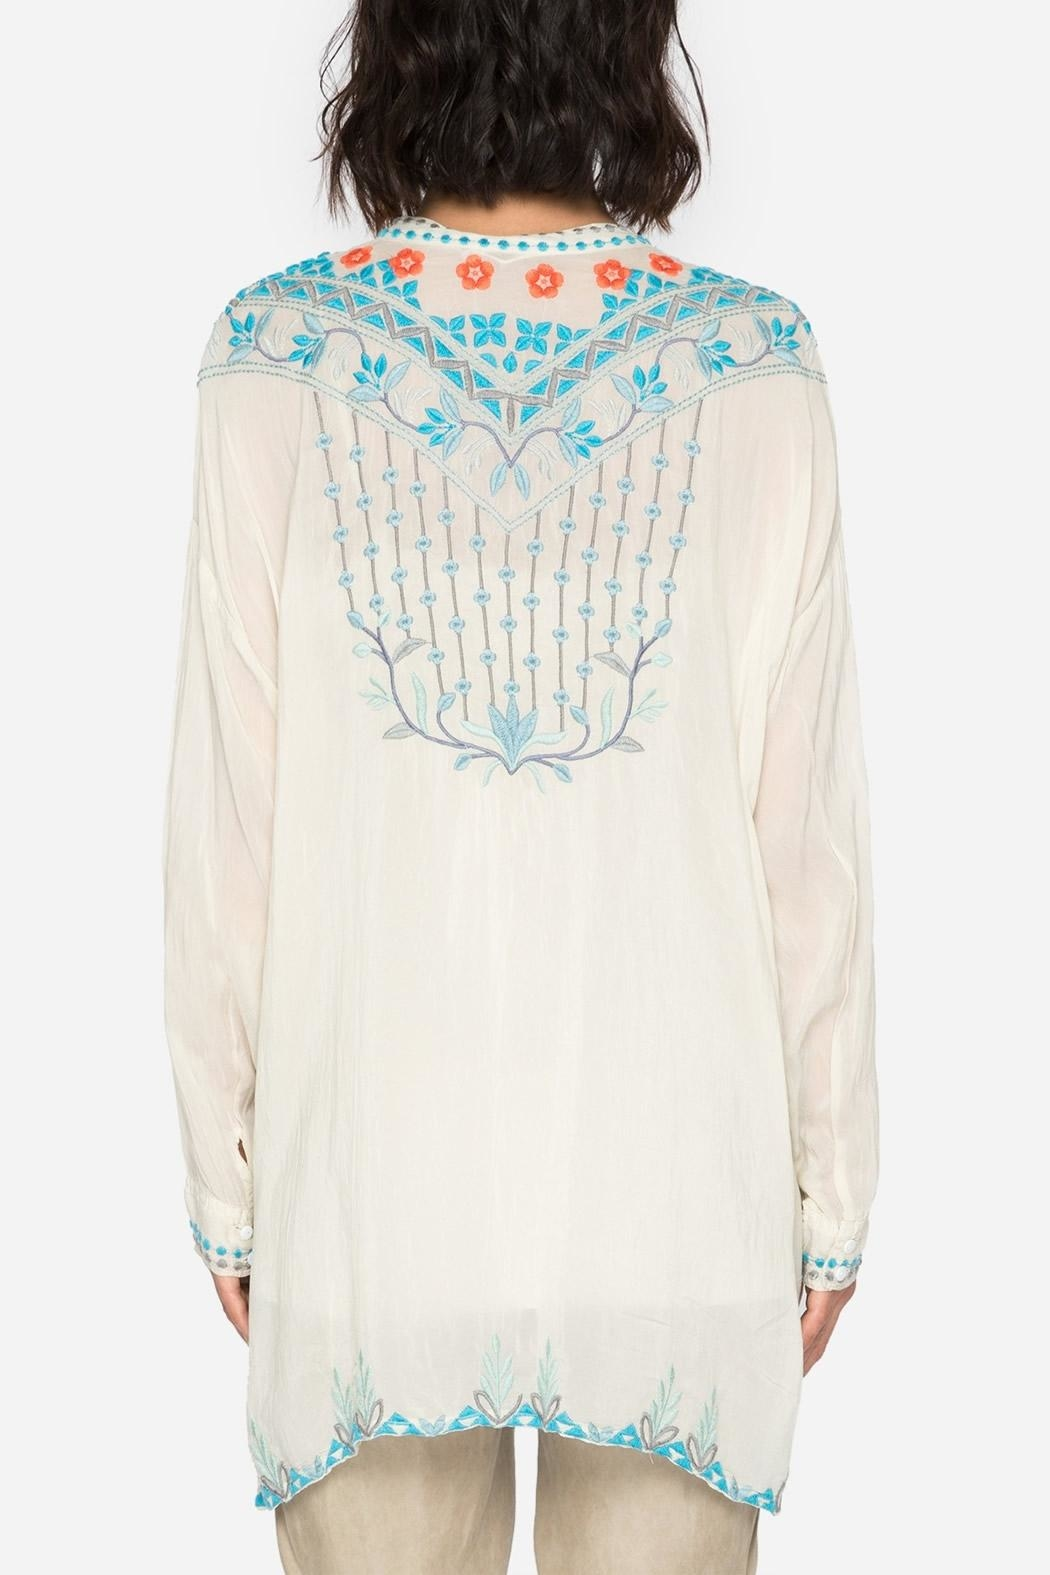 Johnny Was Spring Blouse - Front Full Image